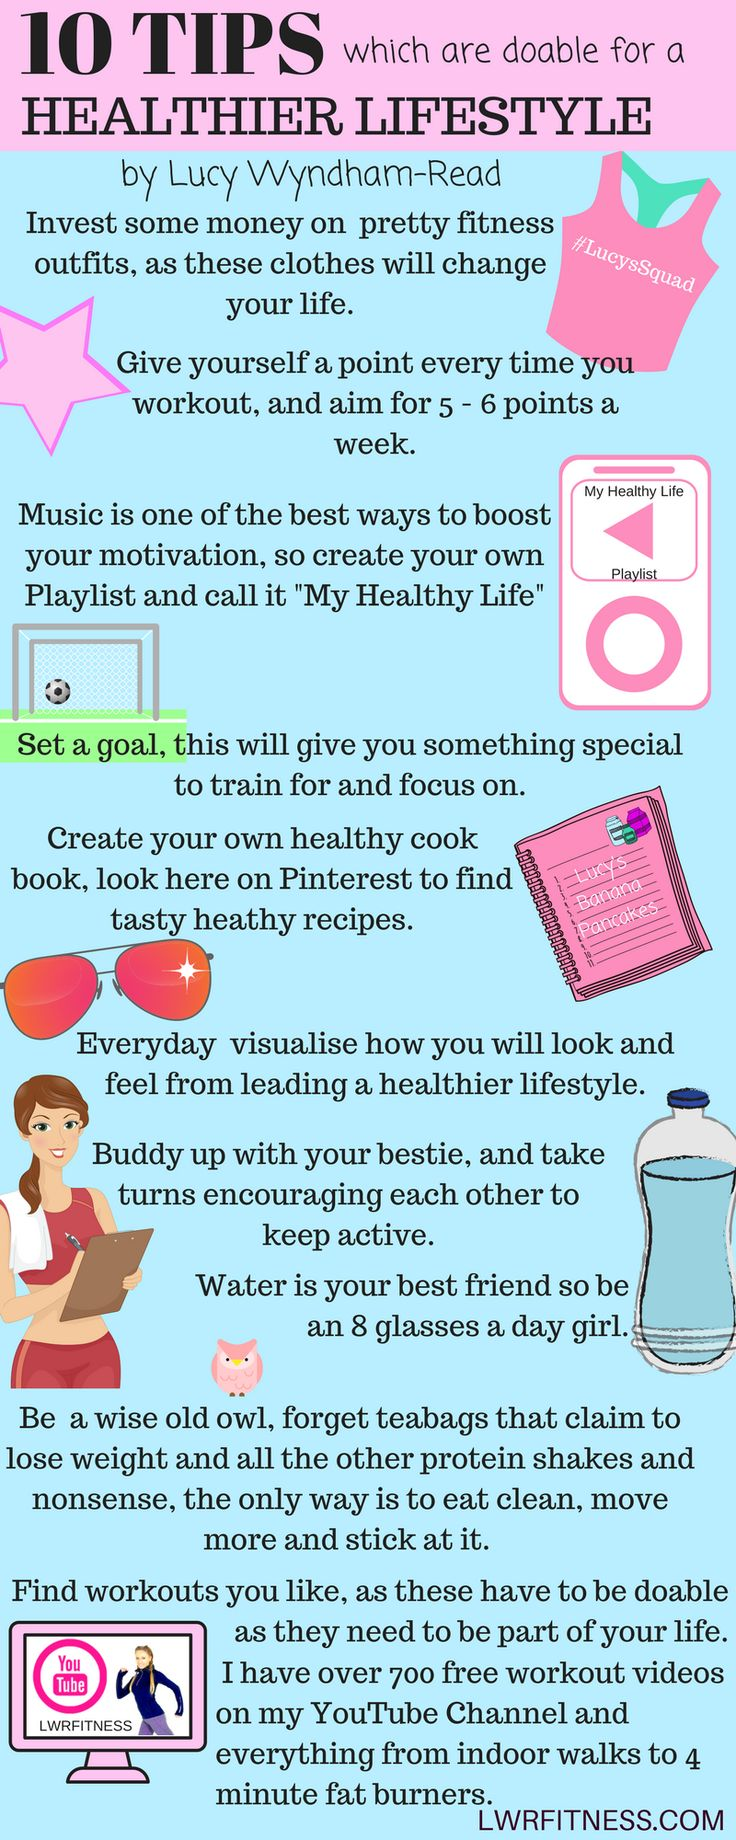 10 Top Tips On How To Lead A Healthier Lifestyle The Key To This Is